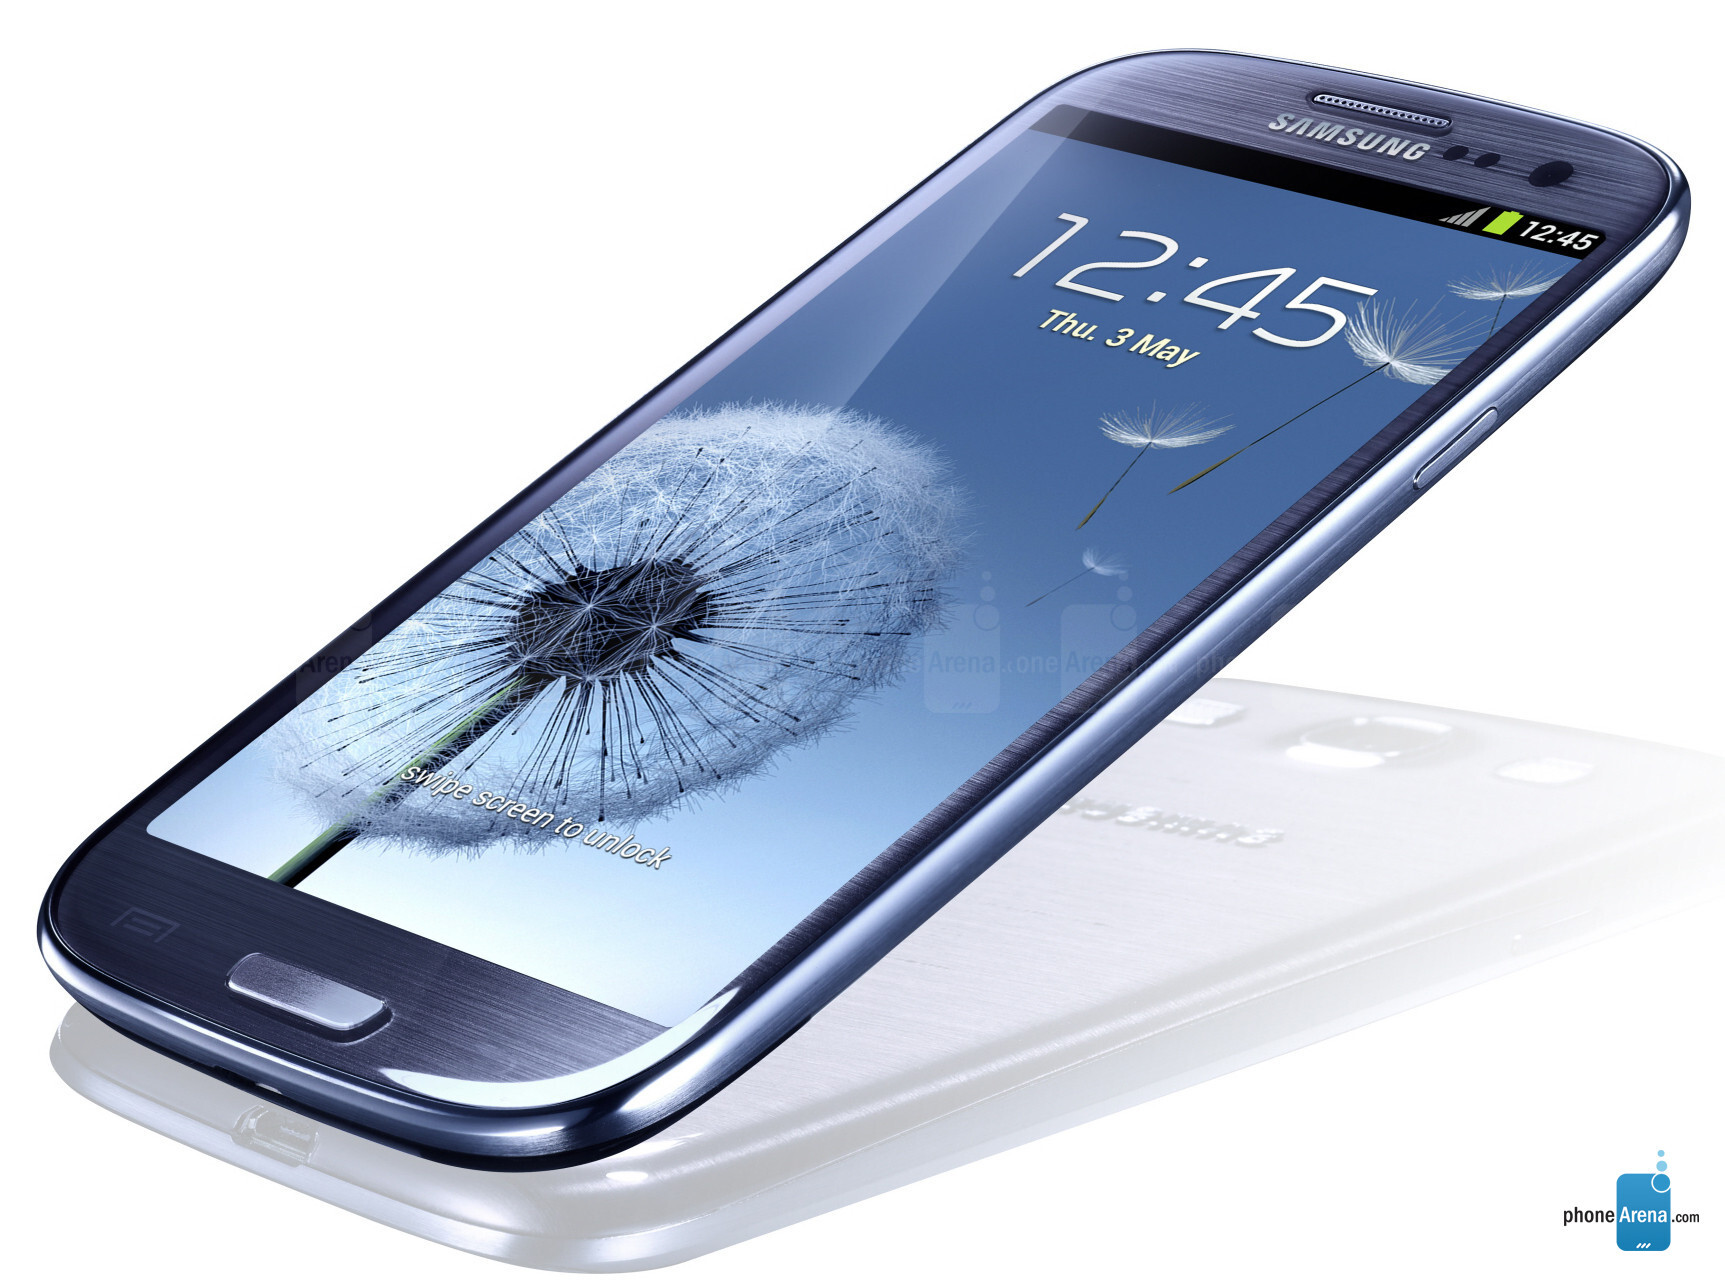 samsung galaxy s iii at t specs. Black Bedroom Furniture Sets. Home Design Ideas